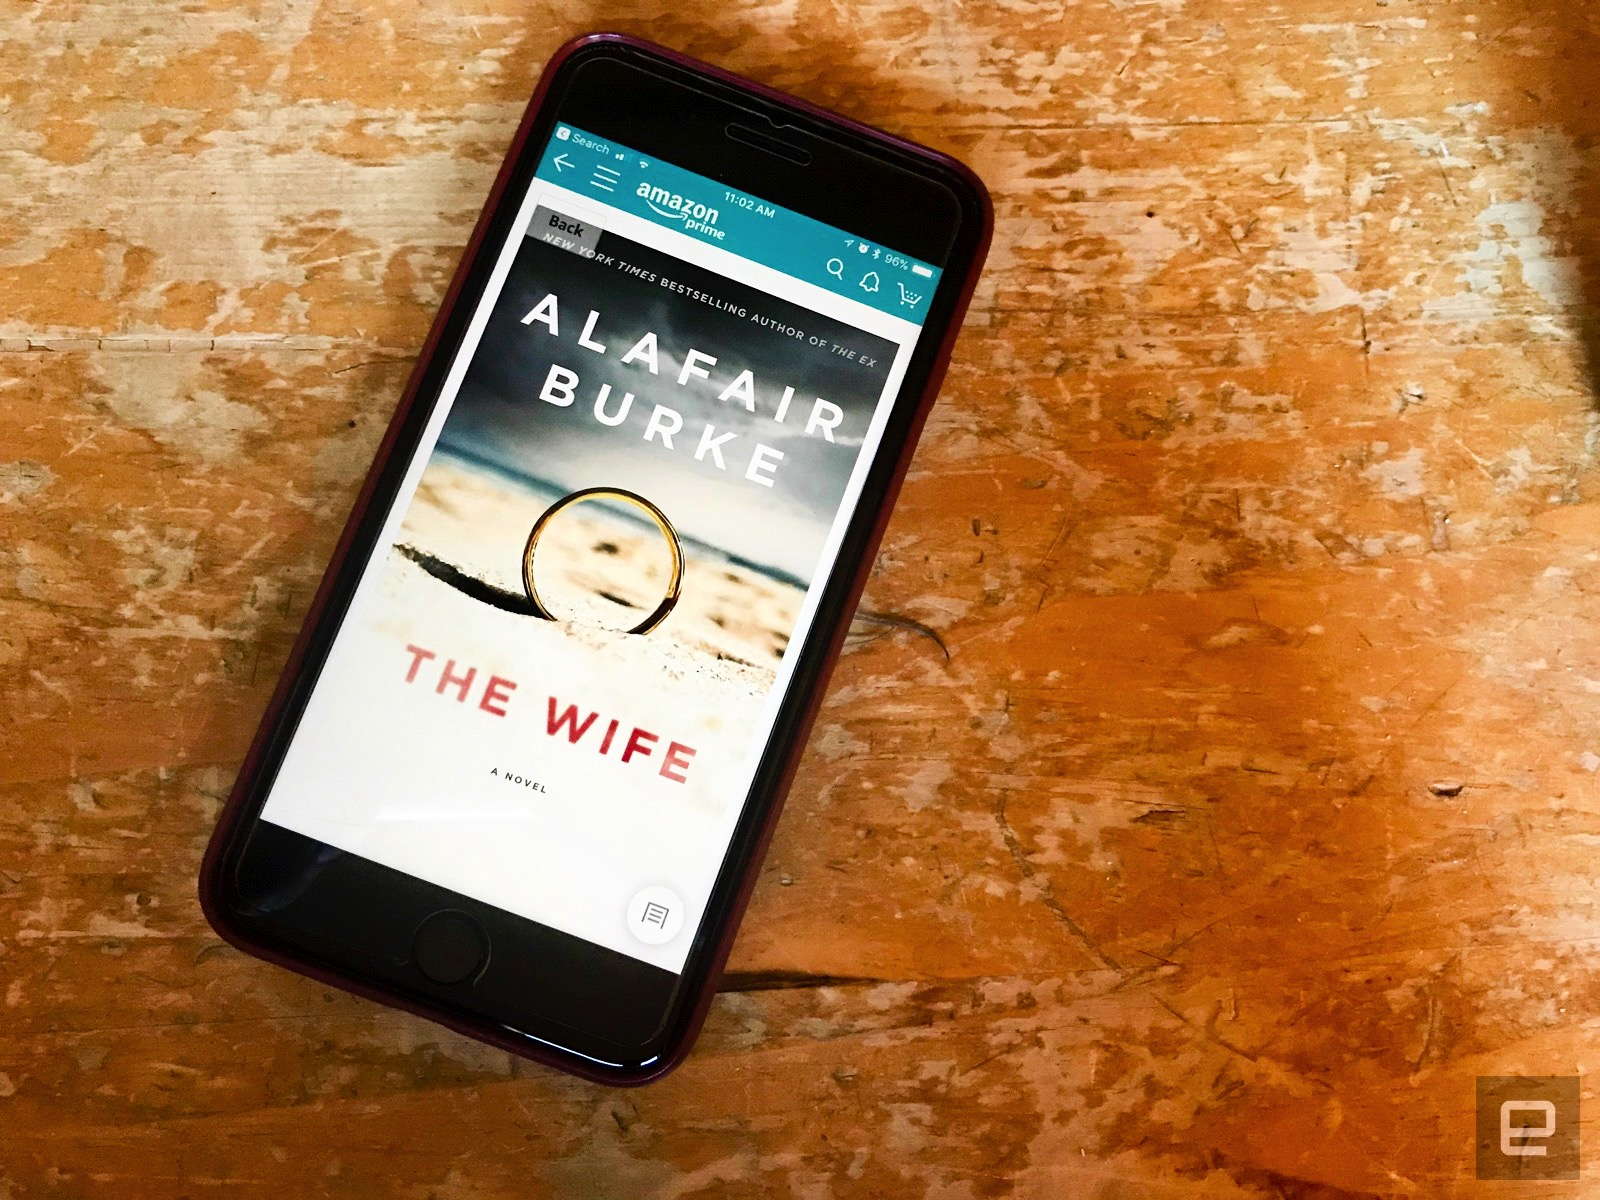 Amazon secures movie rights for Alafair Burkes thriller The Wife